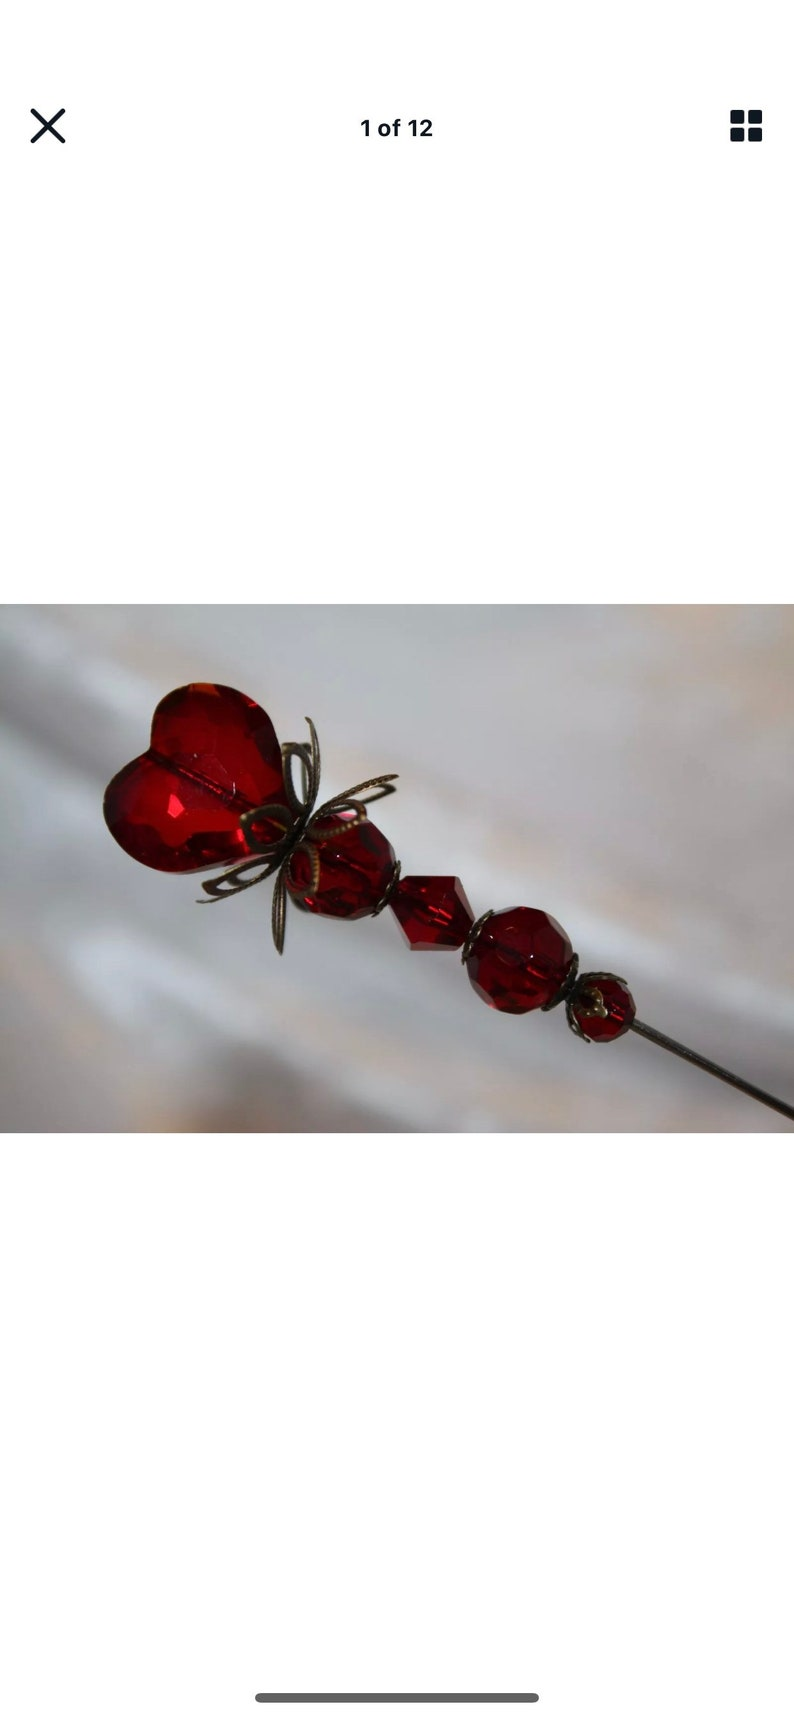 Sparkling Red Crystal Heart Hat Pin /& Clutch } 8\u201d Long Sturdy Steel Pin to Wear } Antique Vintage Style Hatpin Lapel Scarf Victorian HP338